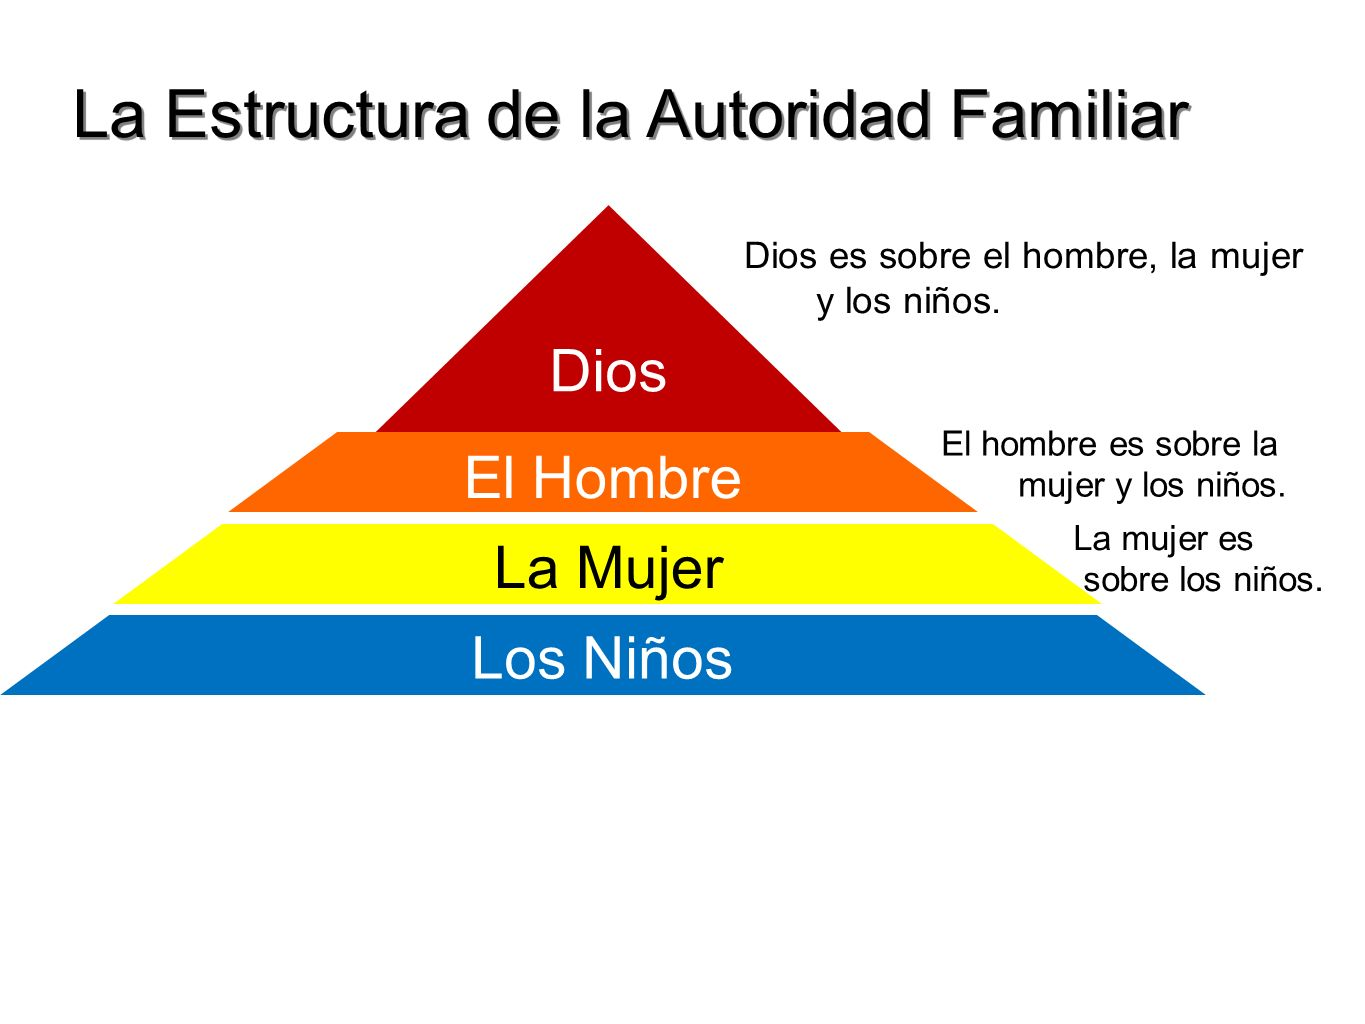 La Estructura de la Autoridad Familiar